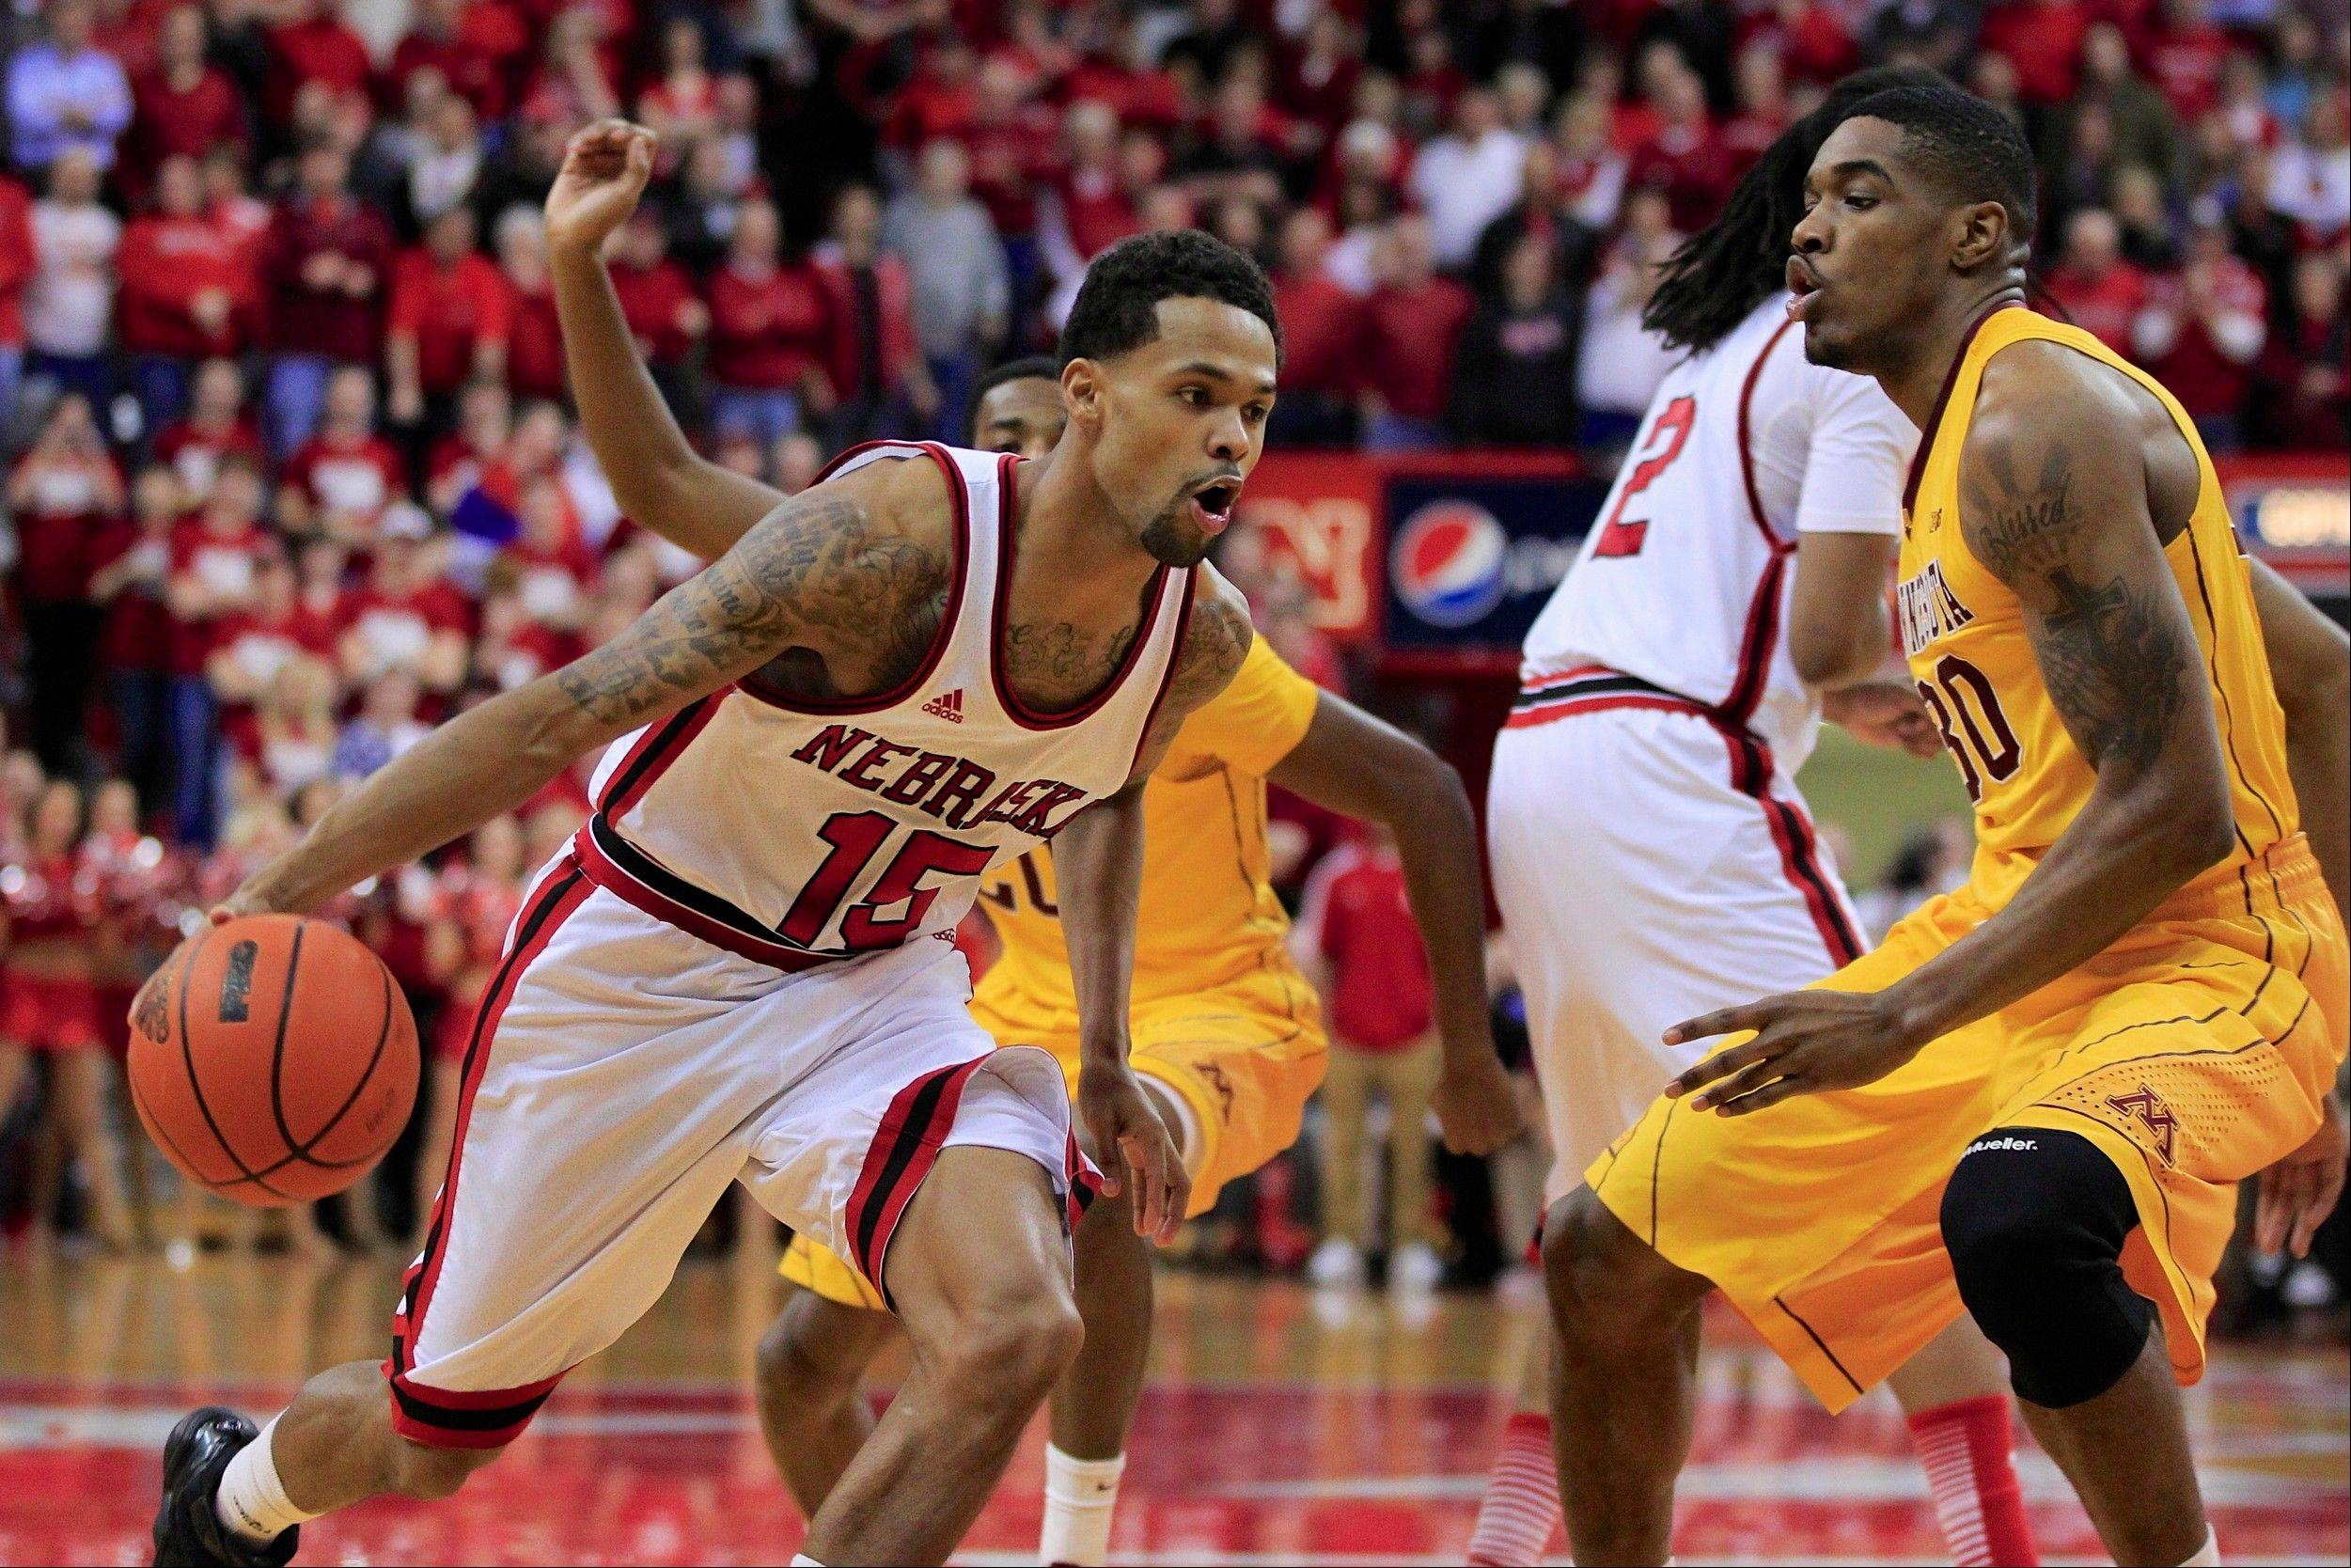 Nebraska's Ray Gallegos drives past Minnesota's Andre Ingram, right, in a game last season.